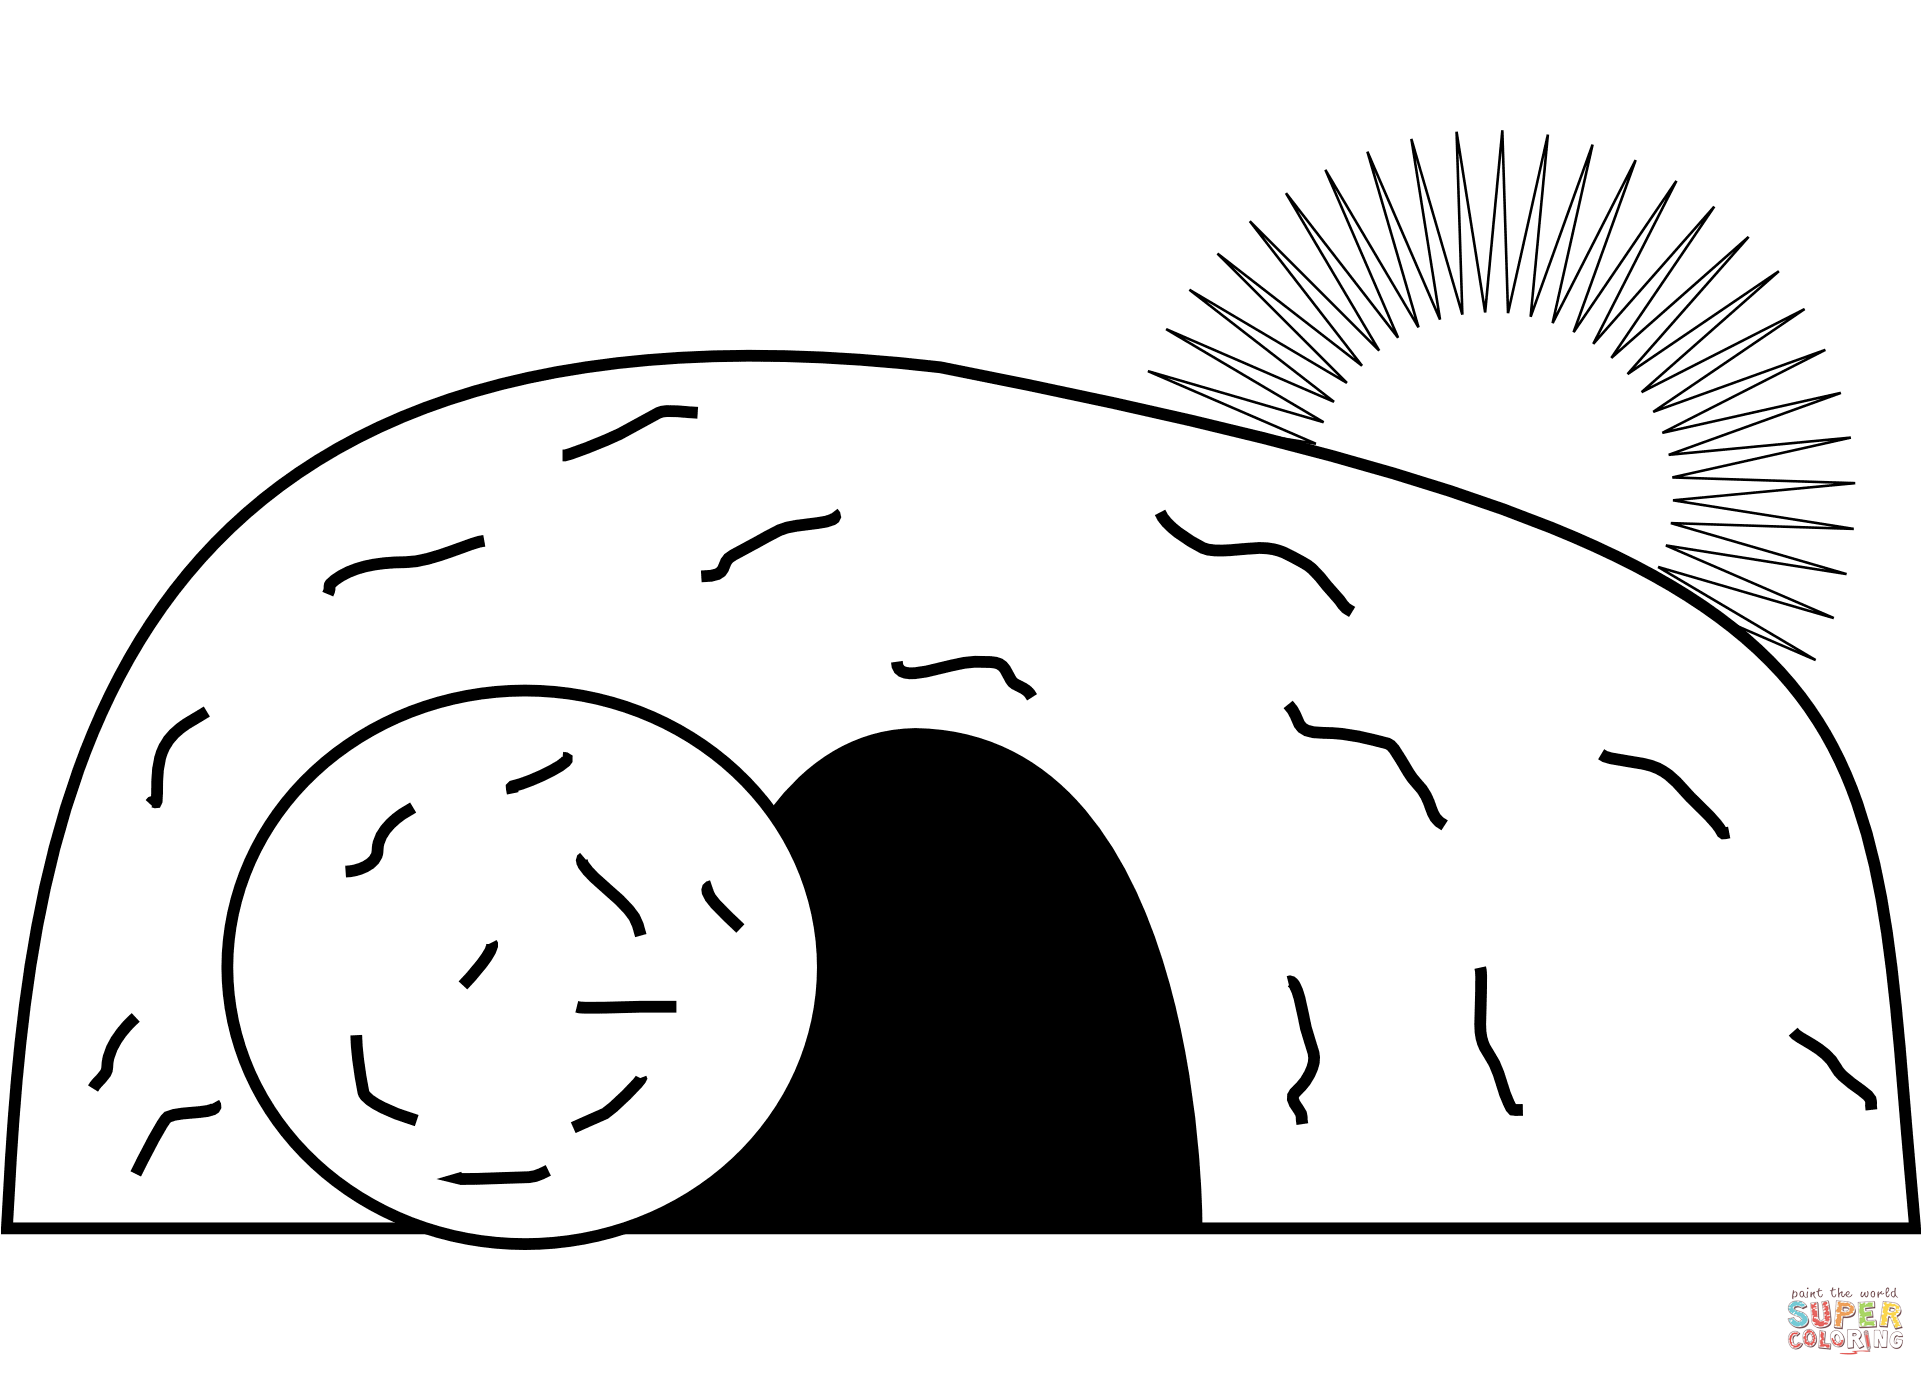 Jesus Empty Tomb Super Coloring Bible Coloring Pages Coloring Pages Sunday School Kids [ 1376 x 1926 Pixel ]